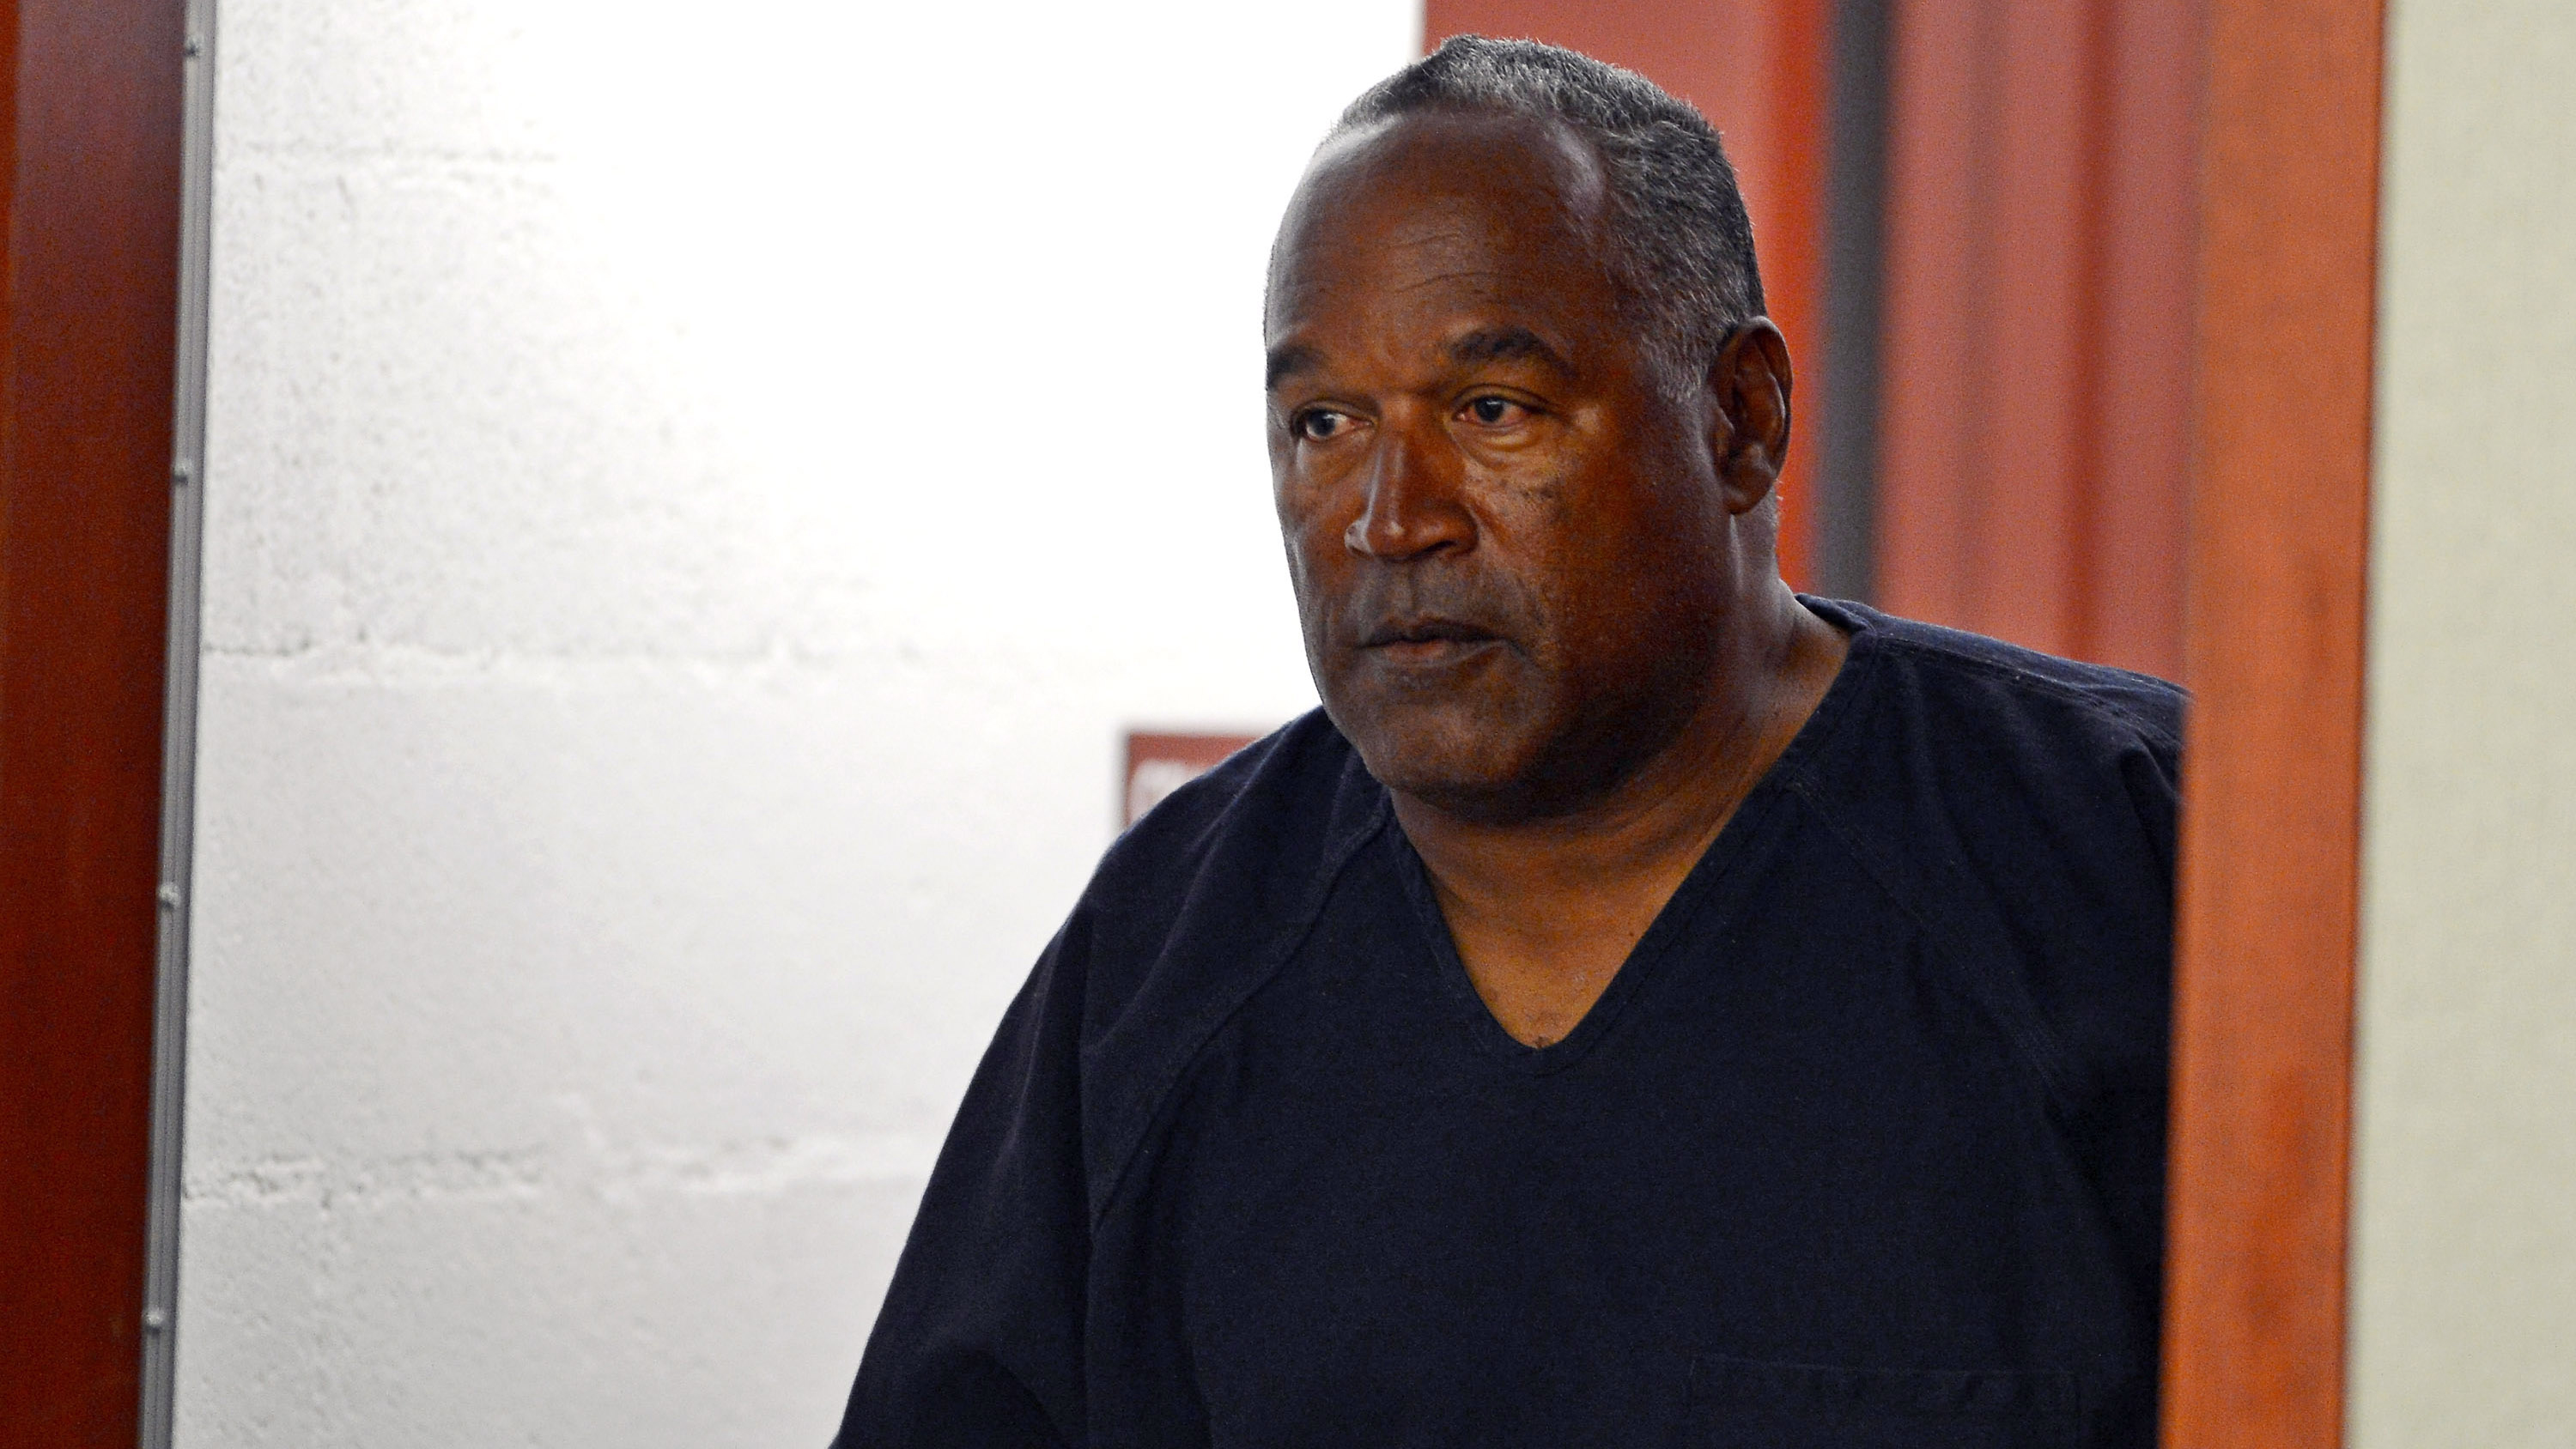 O.J. Simpson Seeks Retrial In Las Vegas Court – Day 5